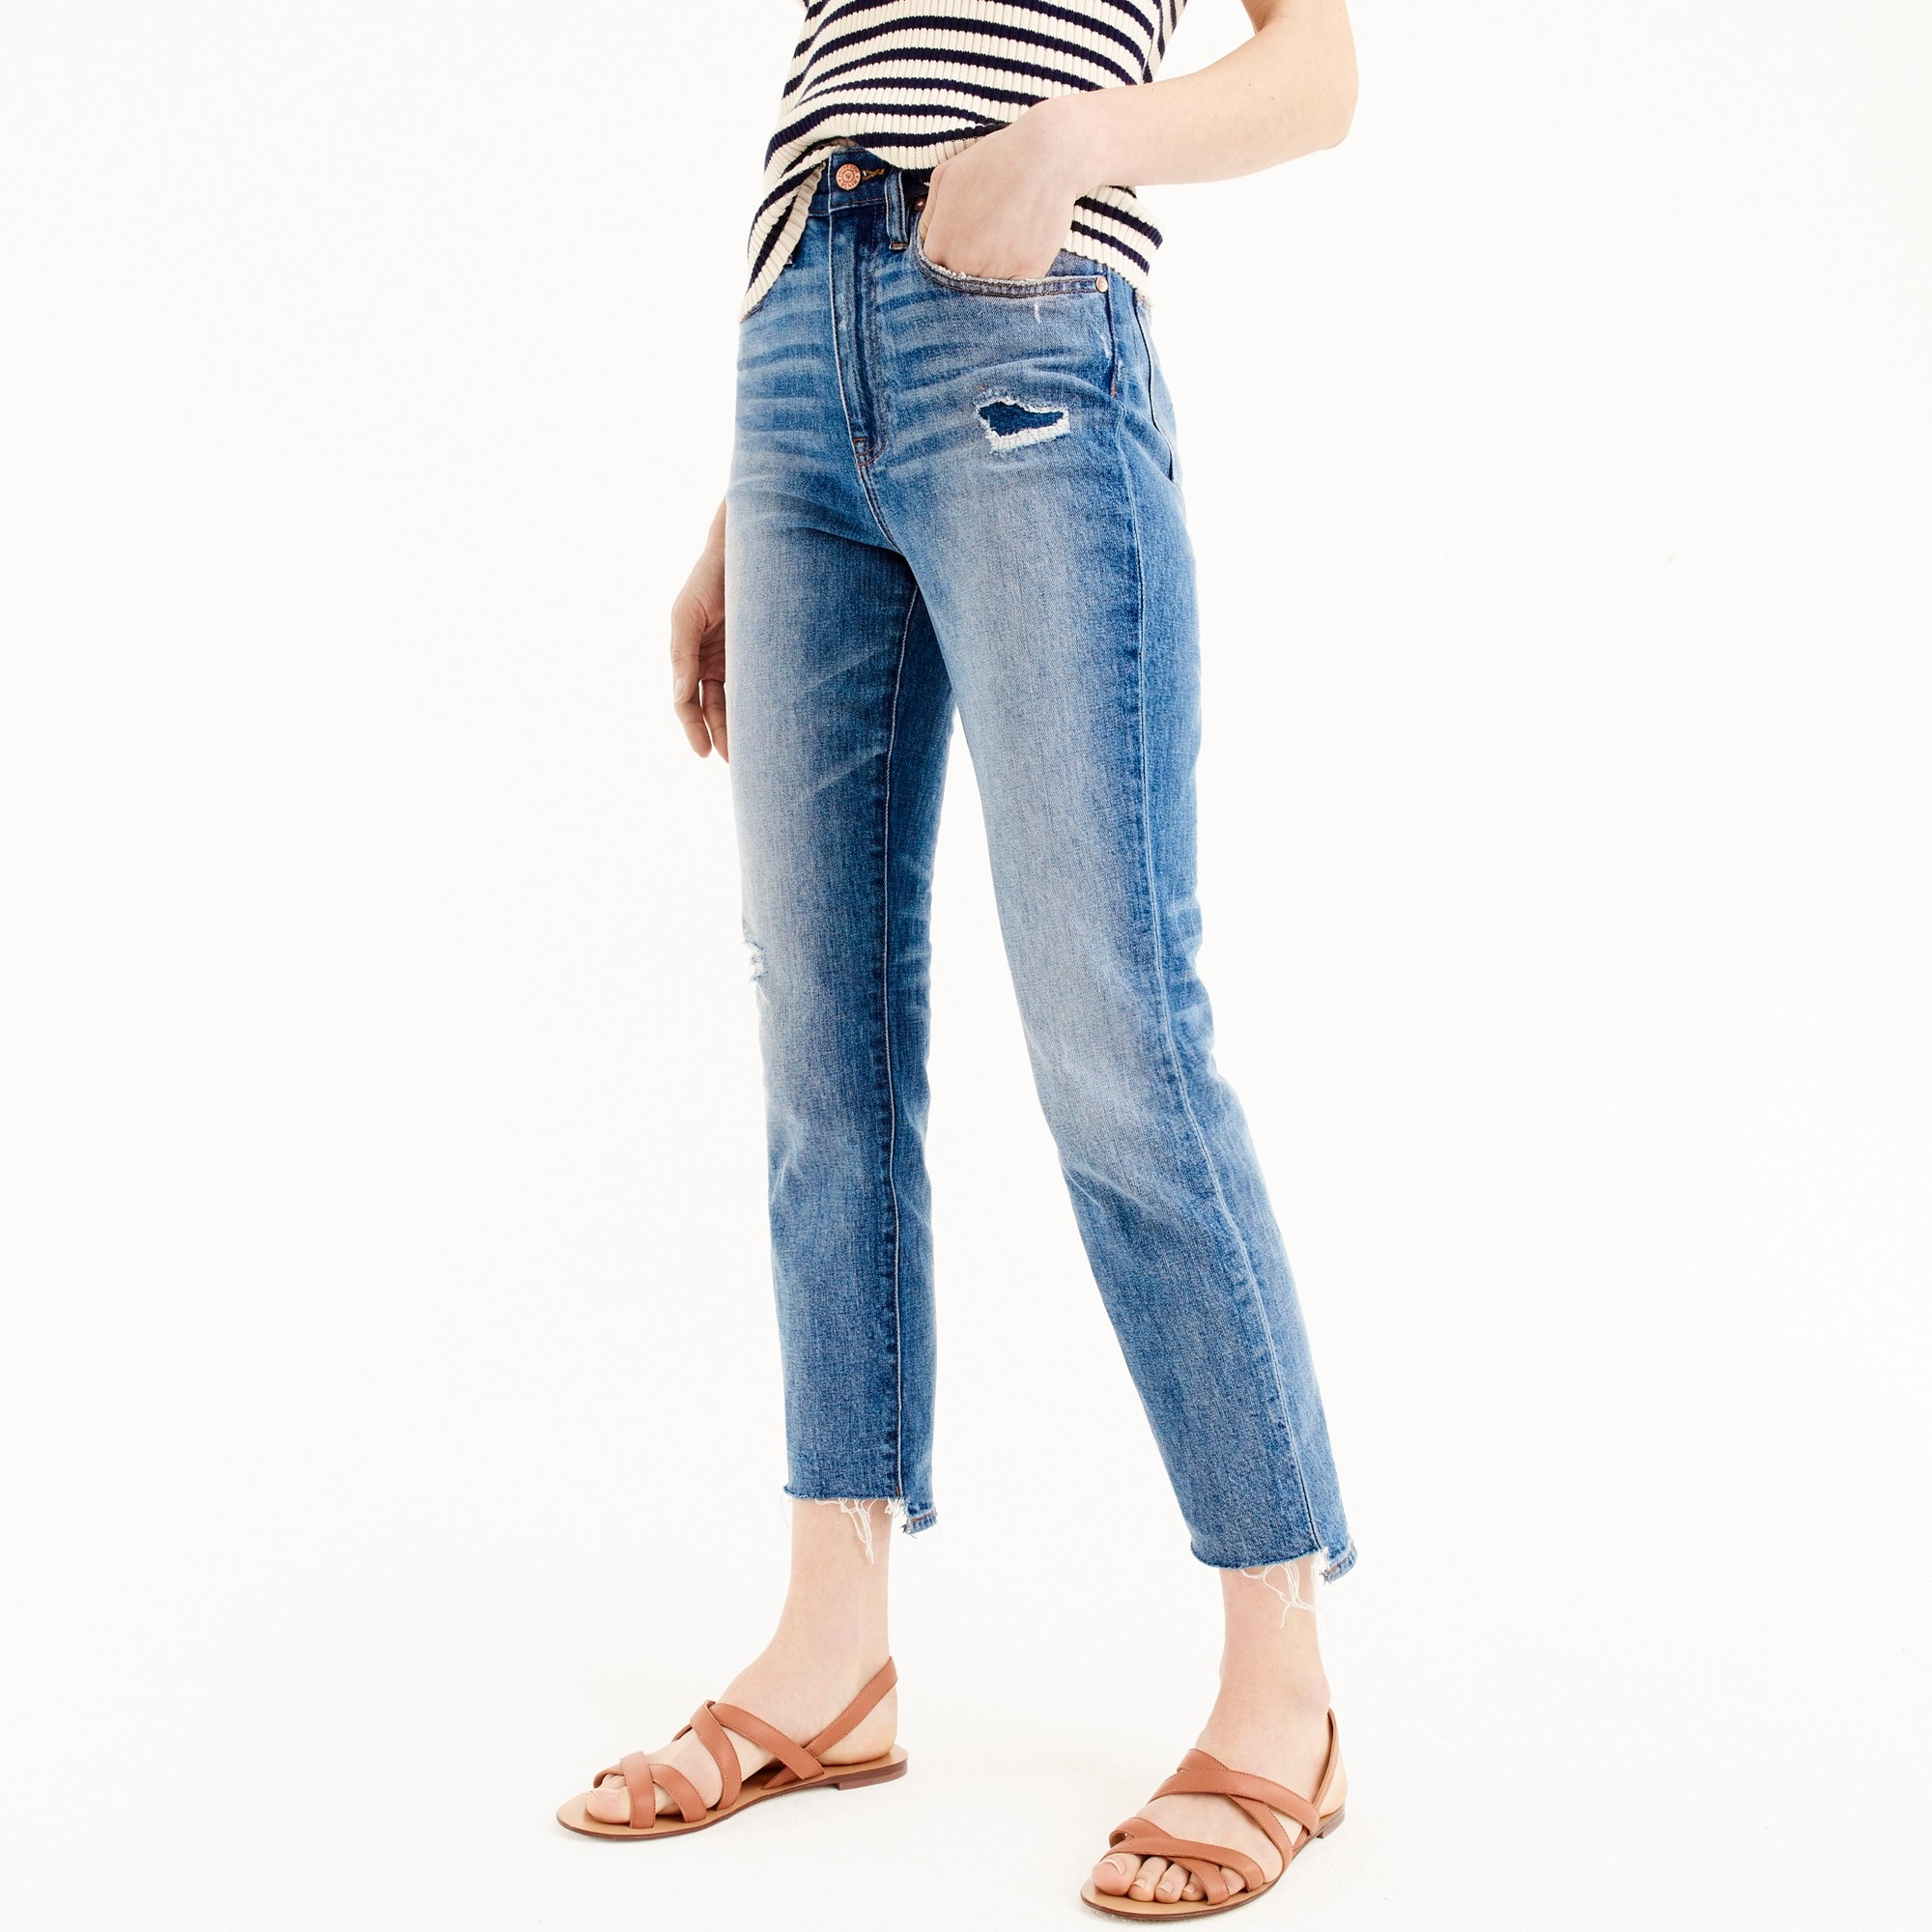 Image 2 for Point Sur high-rise boyfriend jean with uneven hems